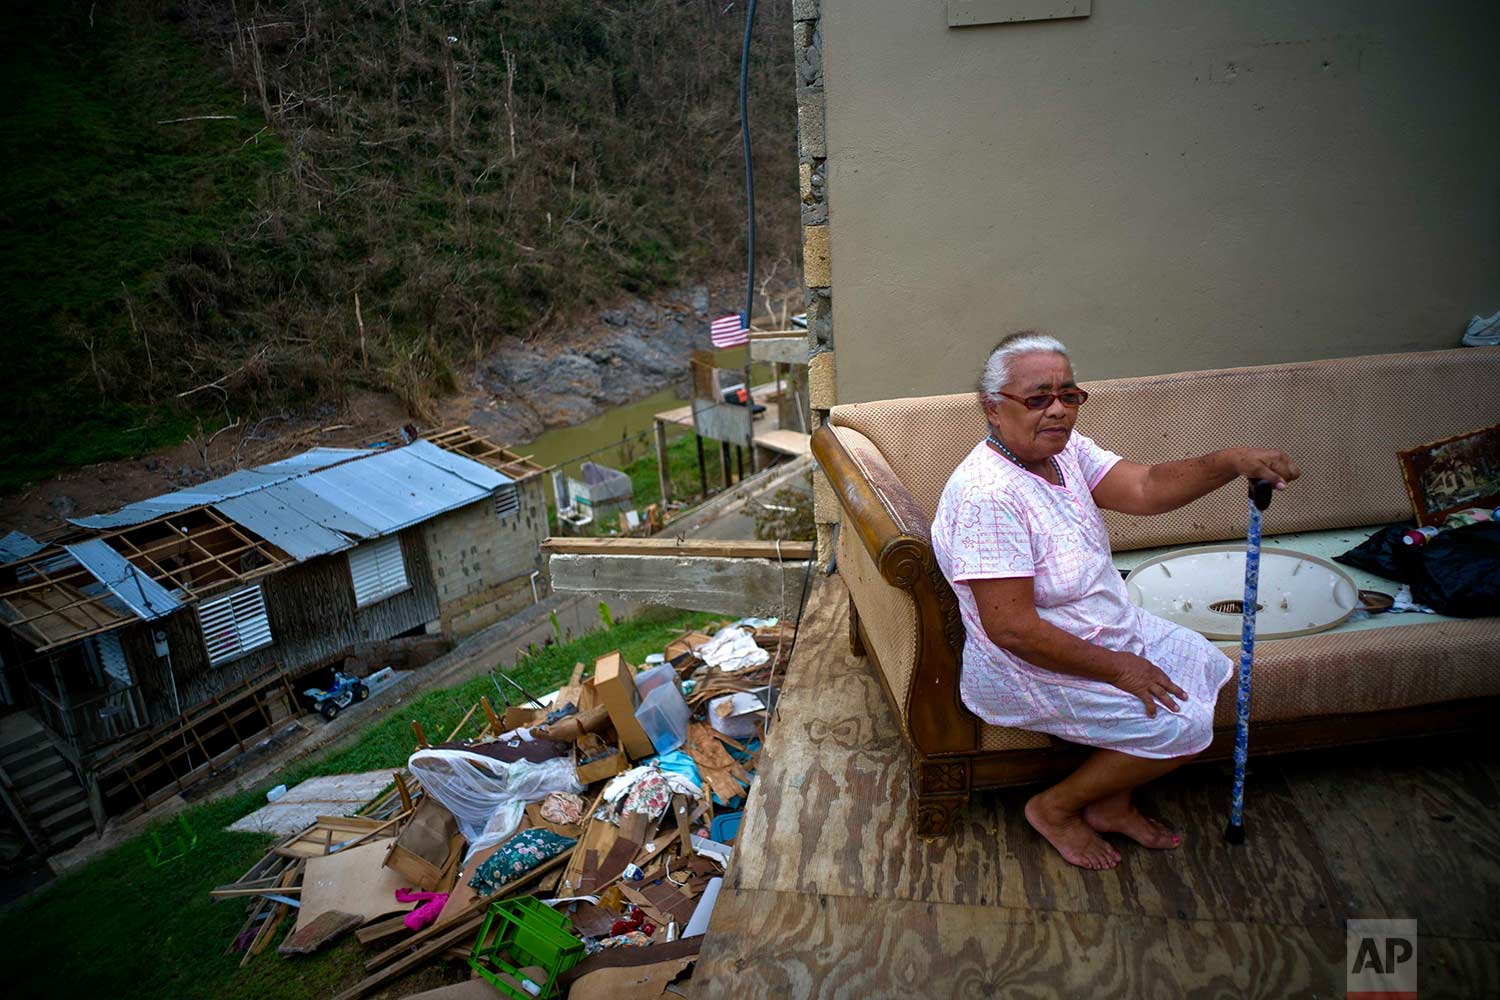 Juana Sortre Vazquez sits on her soaked couch in what remains of her home, destroyed by Hurricane Maria, in the San Lorenza neighborhood of Morovis, Puerto Rico, Saturday, Sept. 30, 2017. (AP Photo/Ramon Espinosa)